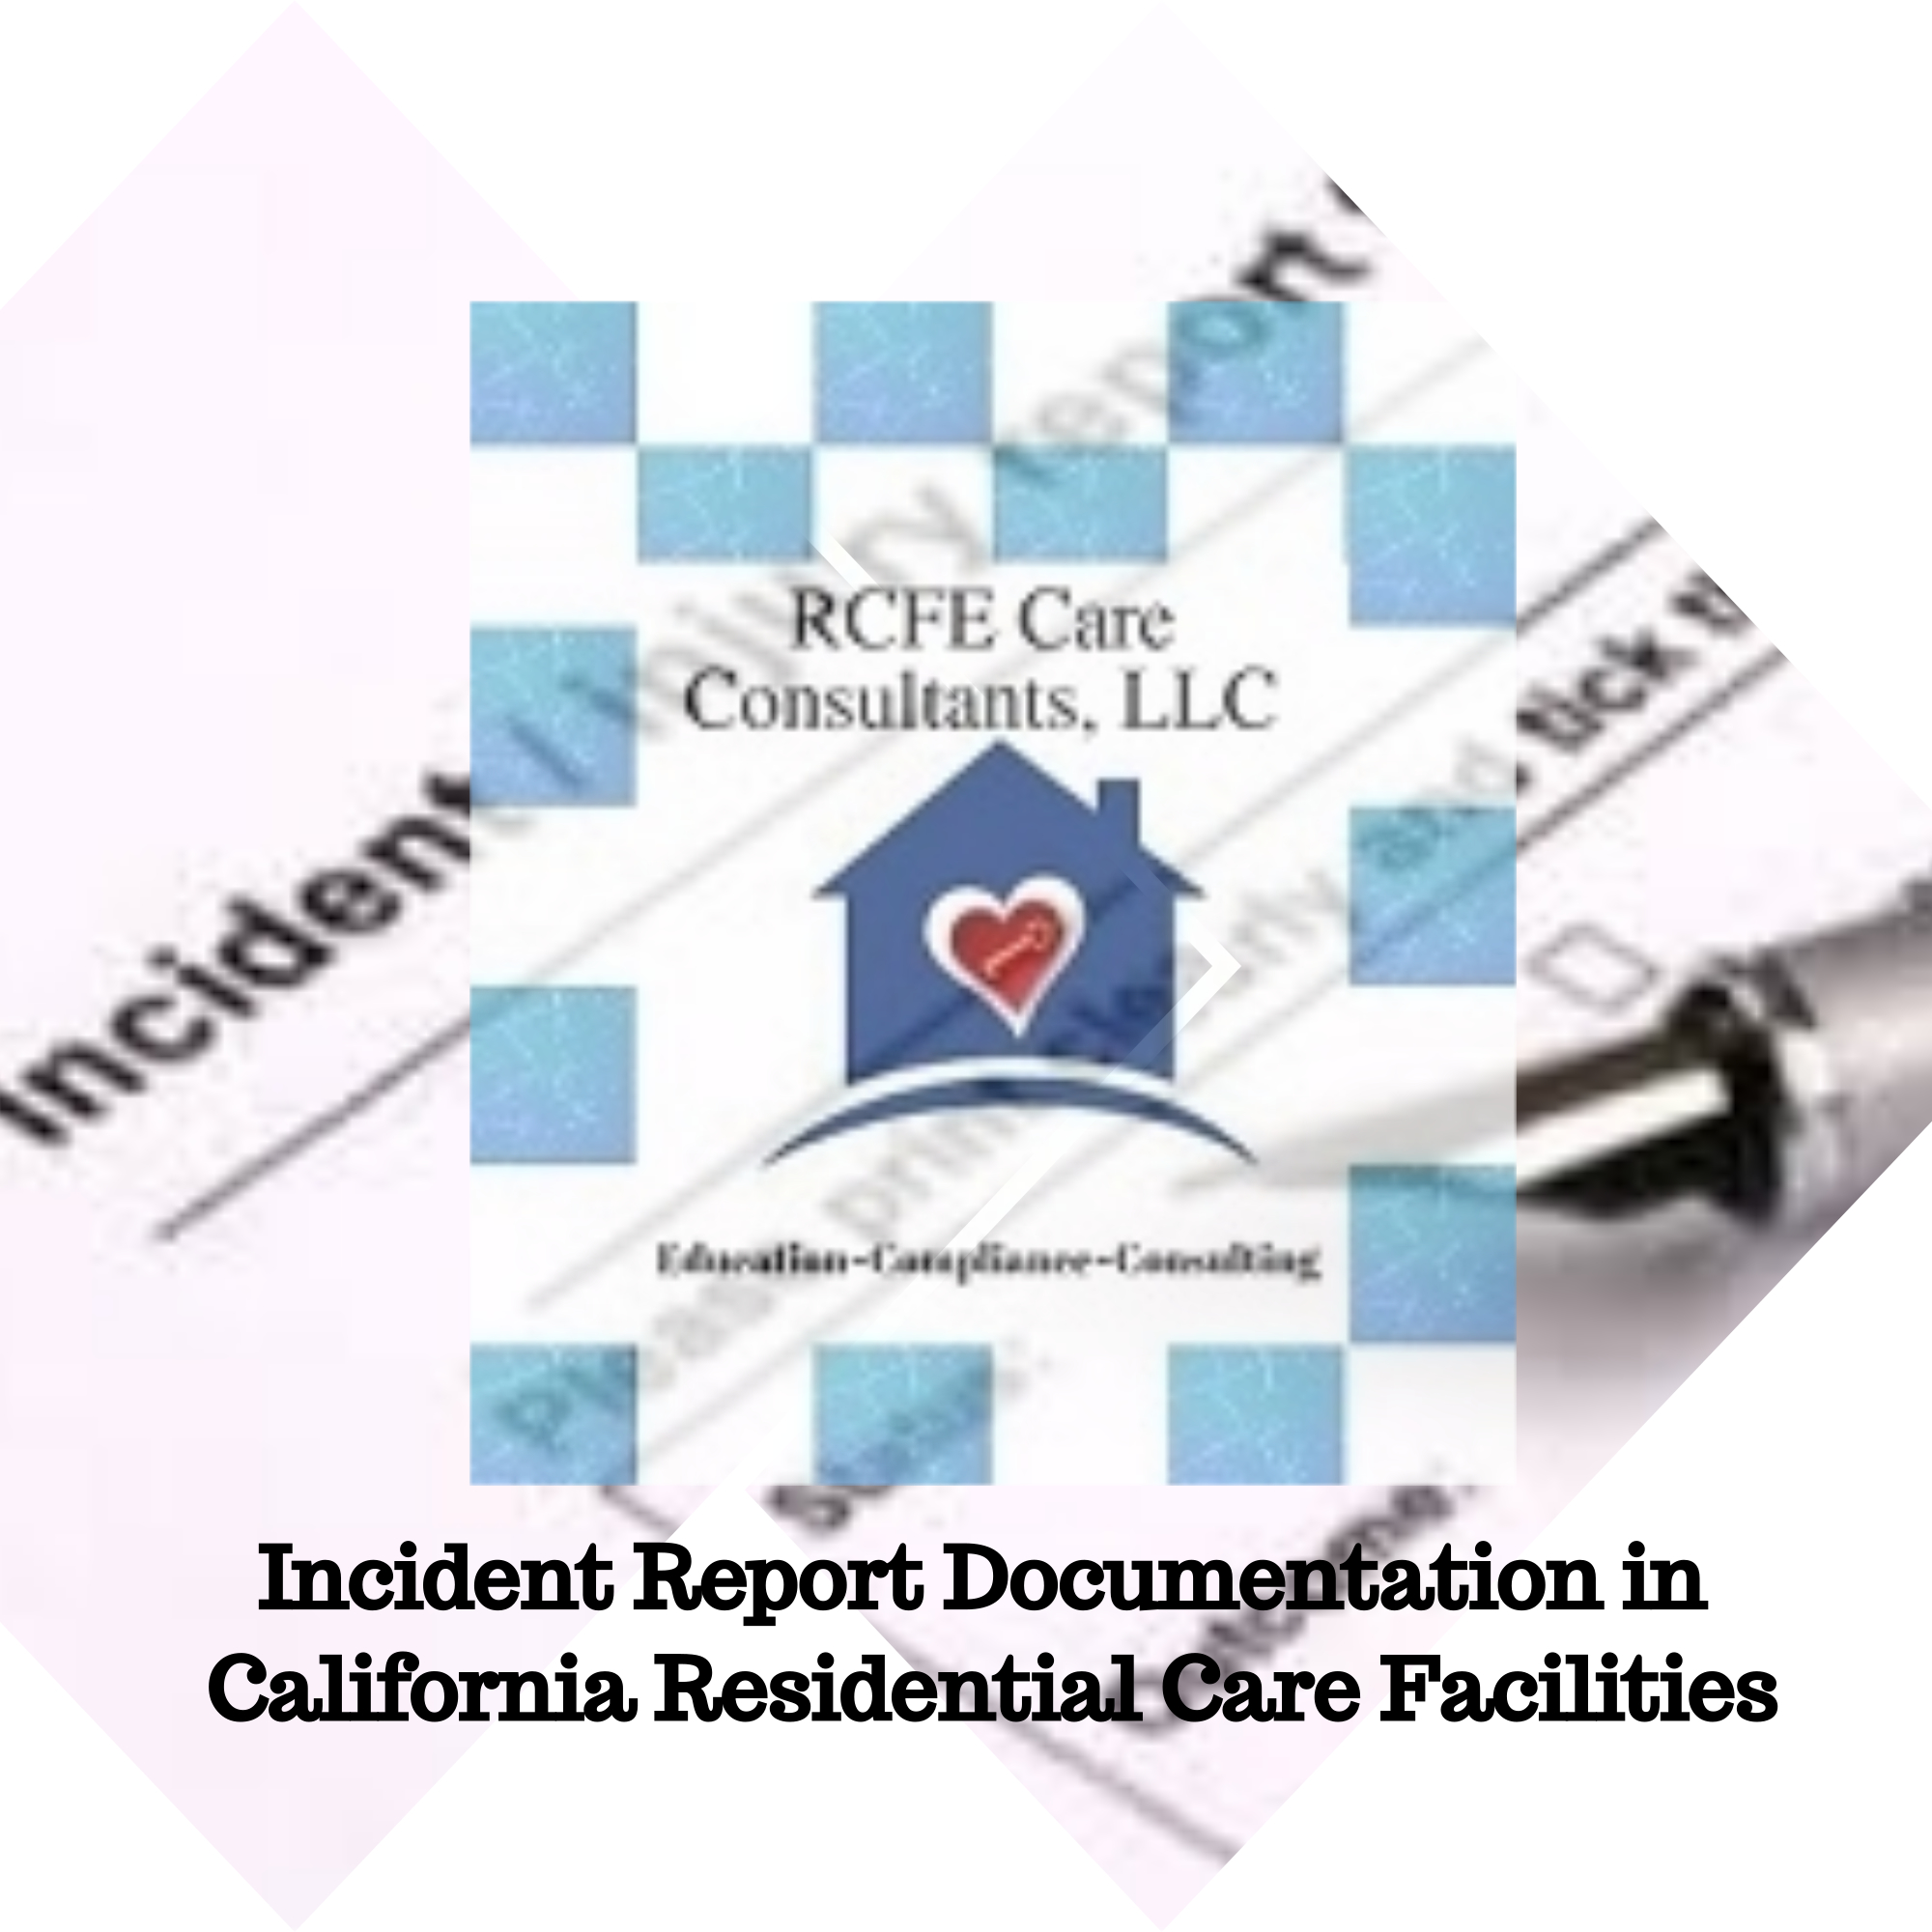 Incident Report Documentation in California Residential Care